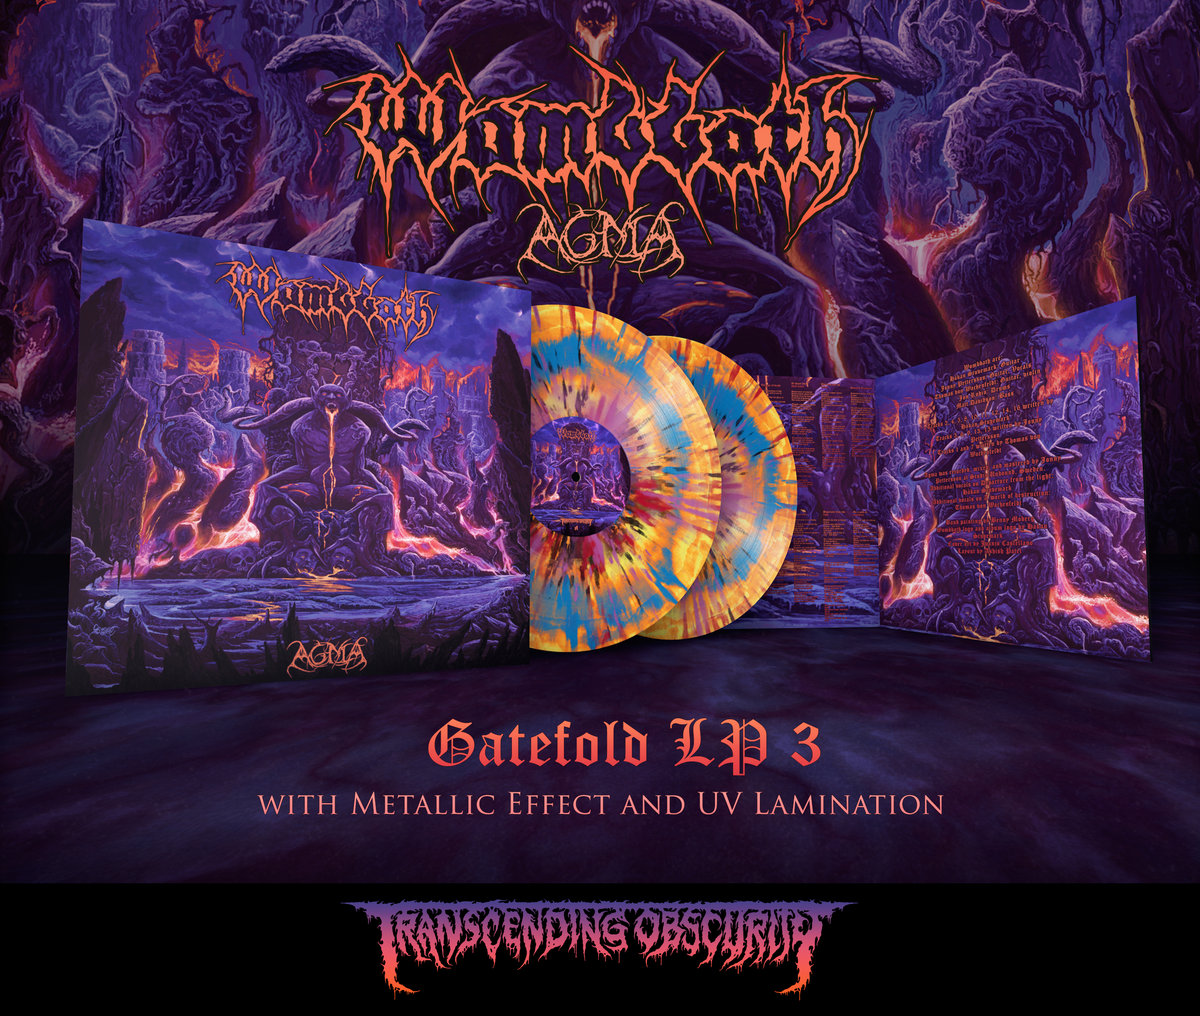 WOMBBATH - Agma Gatefold Double LP with Metallic Effect and UV Lamination (Limited to 75 per variant)